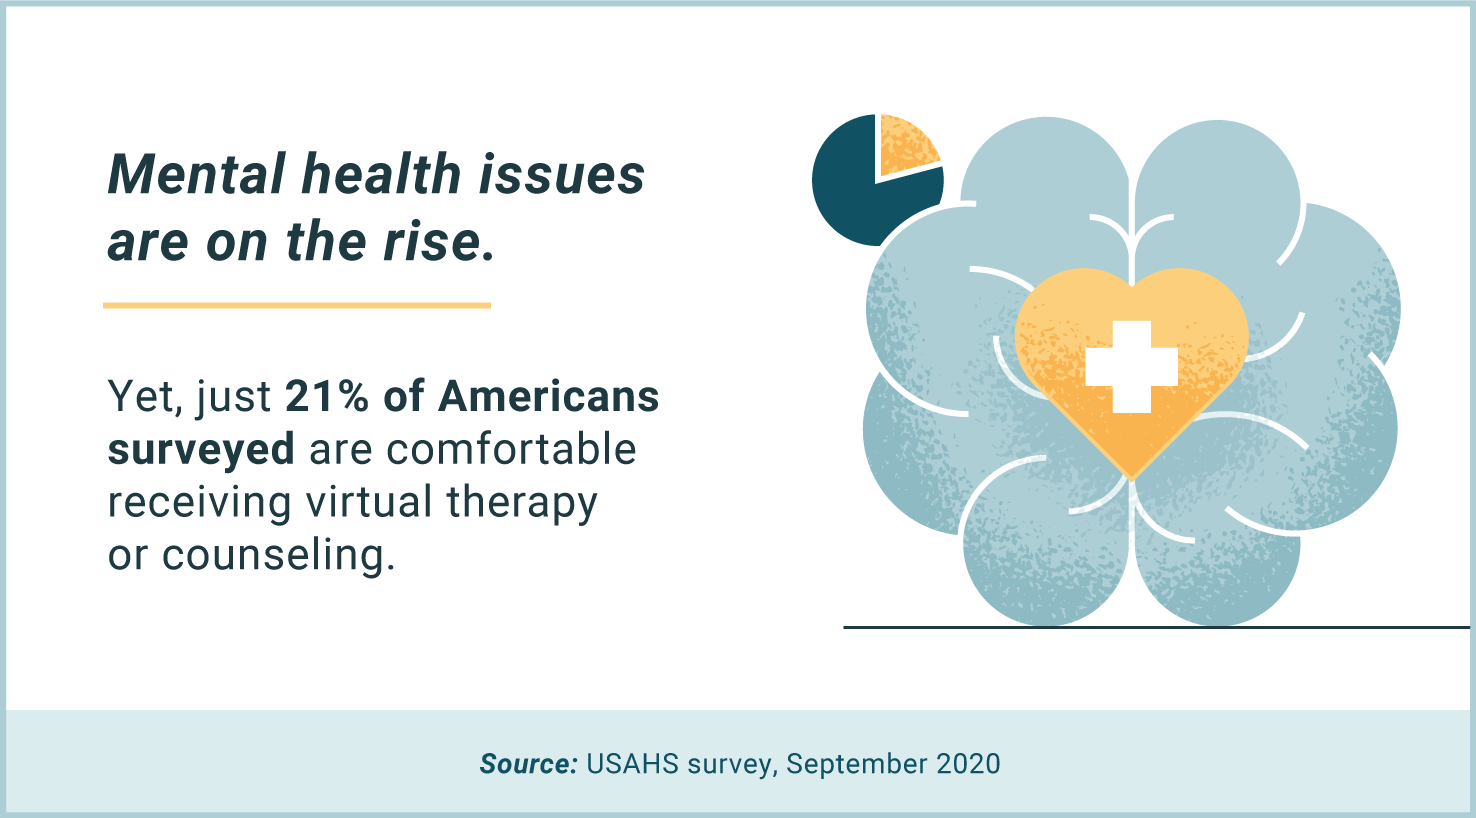 mental health issues are on the rise, yet most Americans uncomfortable with virtual therapy